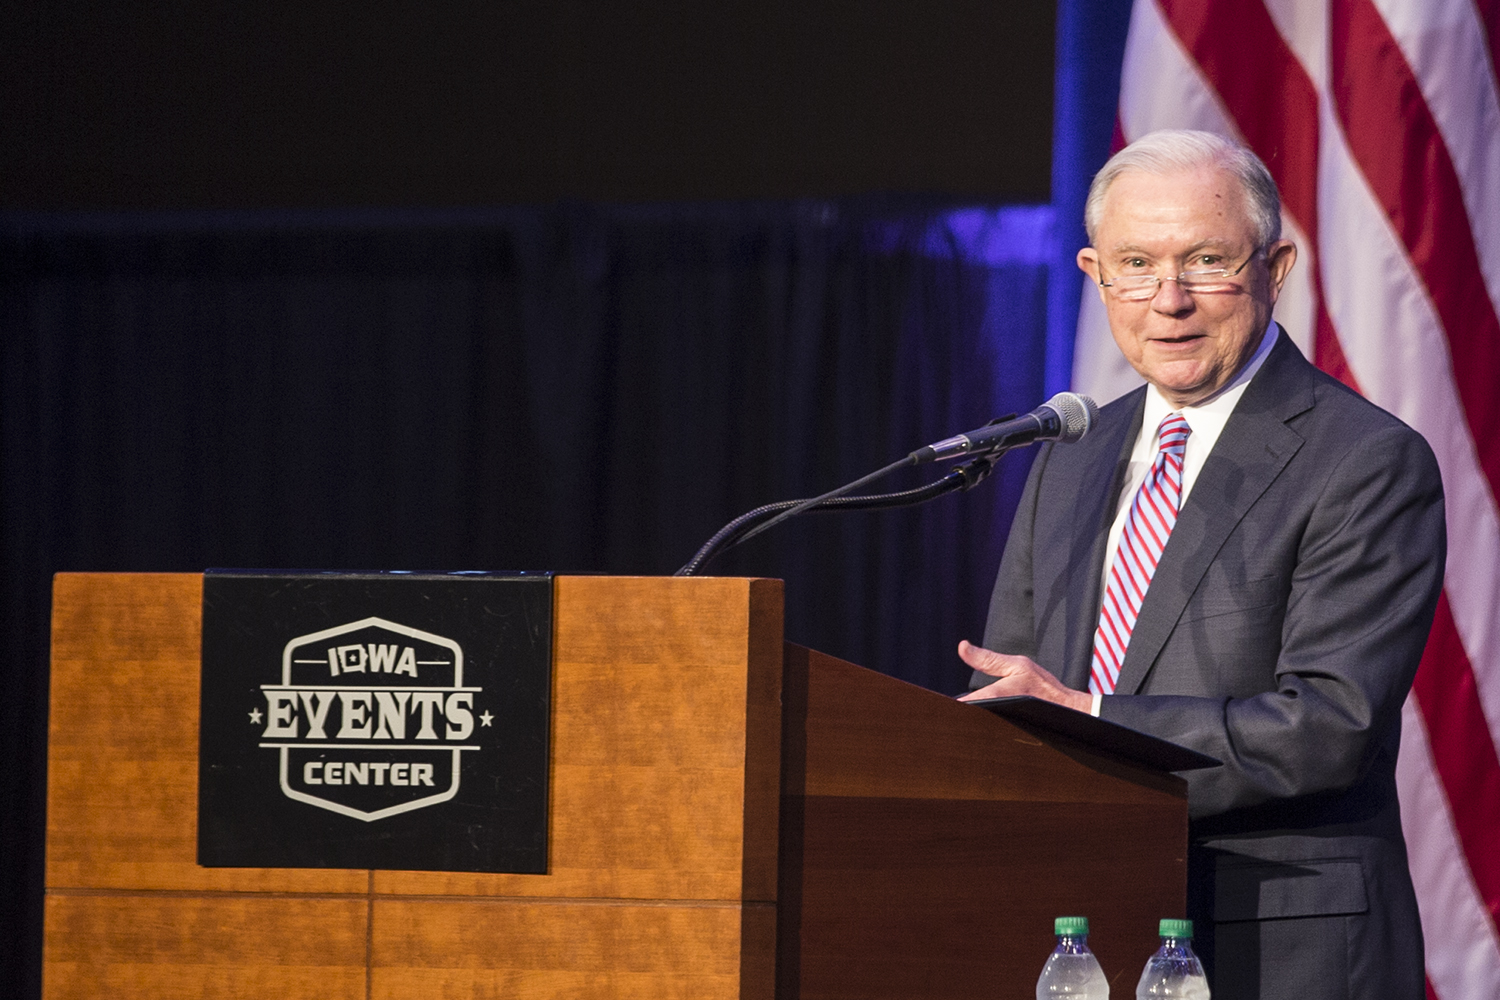 U.S. Attorney General Jeff Sessions spoke at the Eighth Circuit Judicial Conference at the Iowa Events Center in Des Moines Friday, August 17, 2018. Sessions spoke to a group of judges supporting President Trump's U.S. Supreme Court nomination, Brett Kavanaugh.